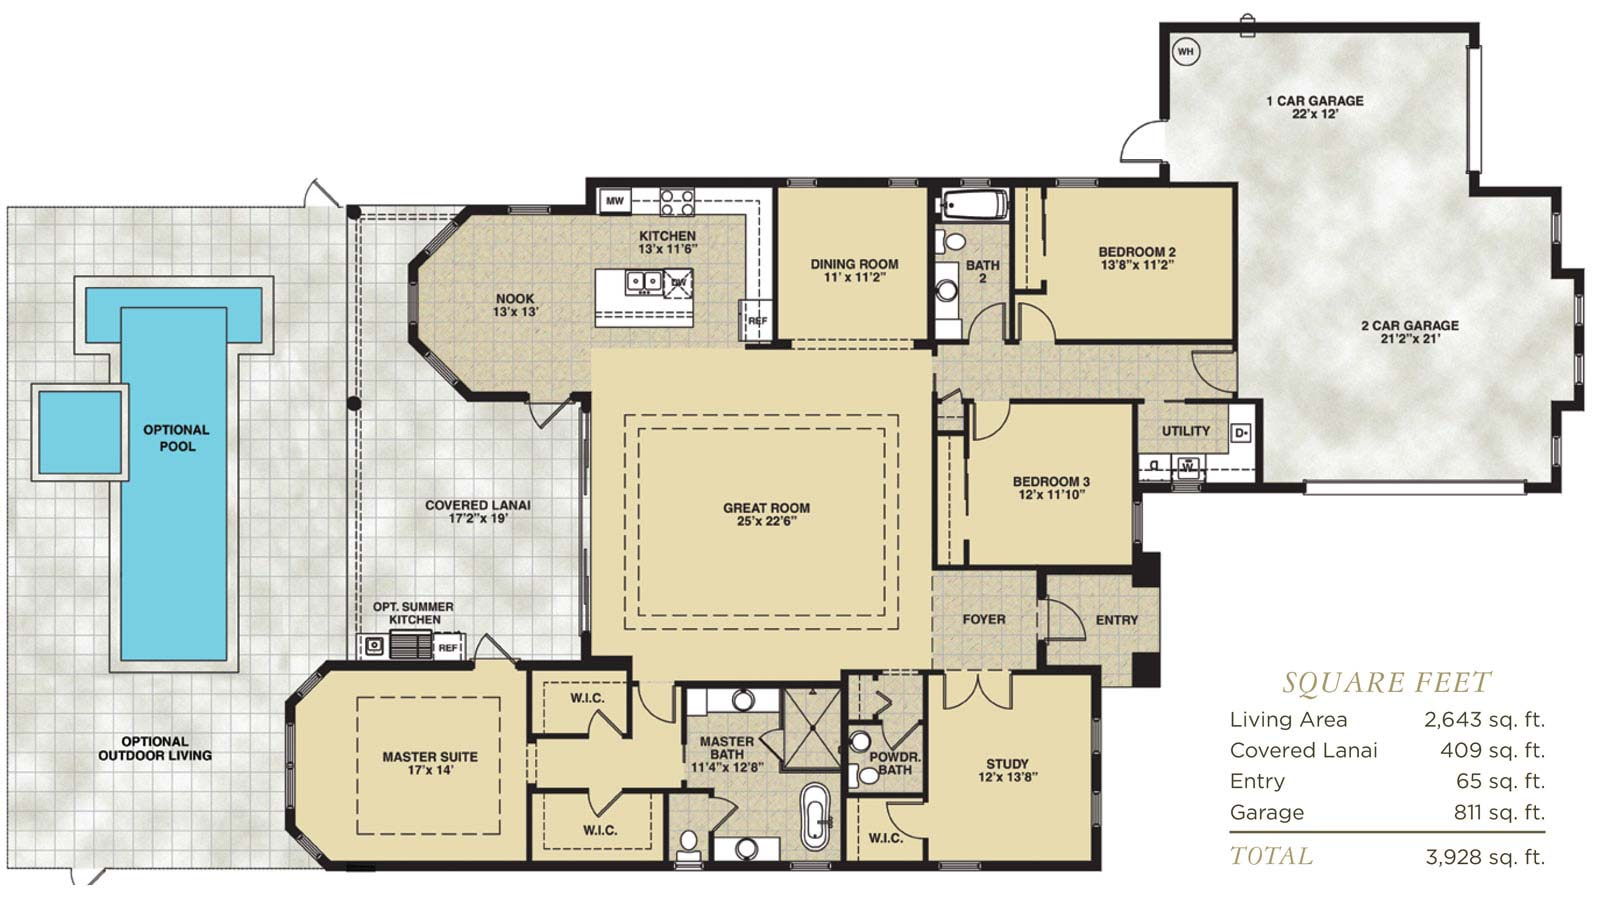 Venice Floor Plan in Hidden Harbor Estates, Fort Myers, Stock Construction, Three Bedroom, Two and One Half Bath, Great Room, Dining Room, Study, Covered Lanai, 2-Car Garage and 1-Car GarageThree Bedroom, Two and One Half Bath, Great Room, Dining Roo